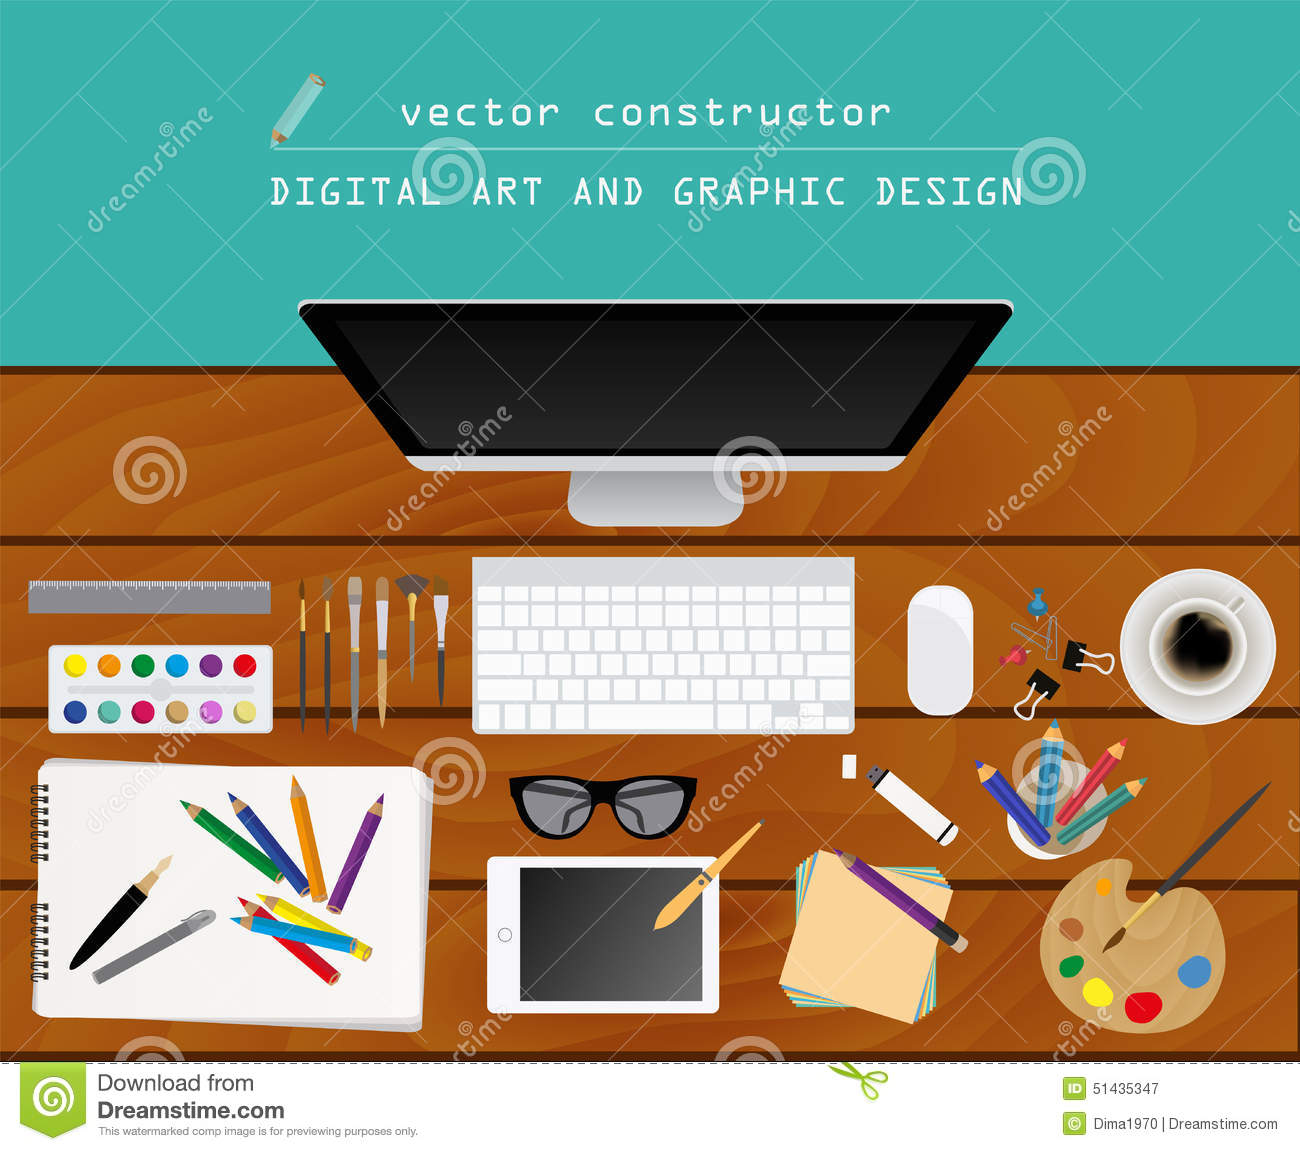 Digital Art And Graphic Design Working Place In Flat Design Co Stock Vector  Image 51435347